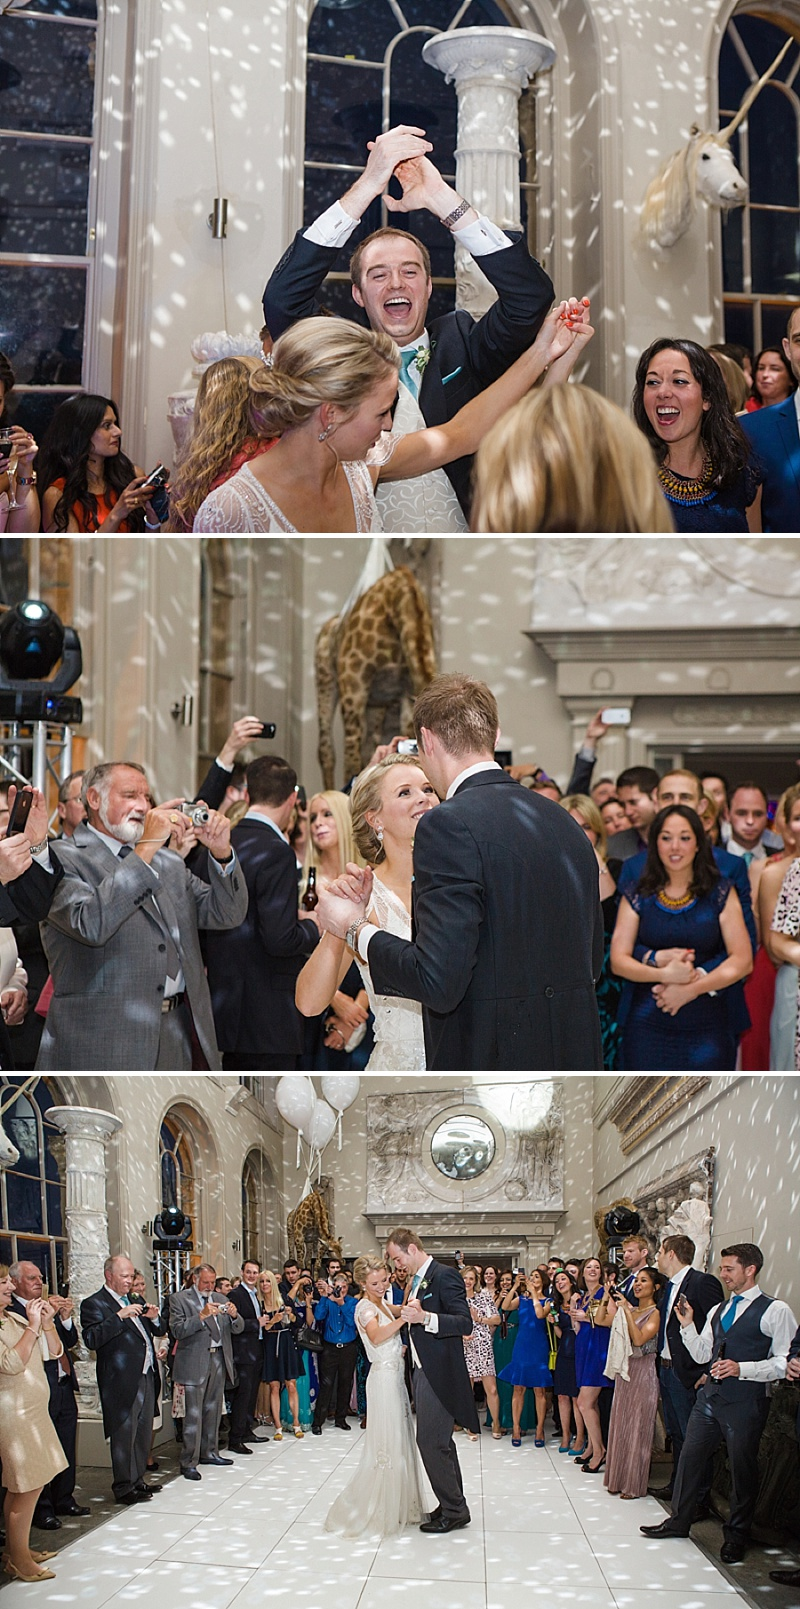 Elegant Wedding At Aynhoe Park With A Pastel Colour Scheme And Bride In A Lace Cap Sleeved Augusta Jones Dress For The Ceremony And A Sequinned Jenny Packham Gown For The Reception And Bridesmaids In Pink Dresses From Ted Baker 10